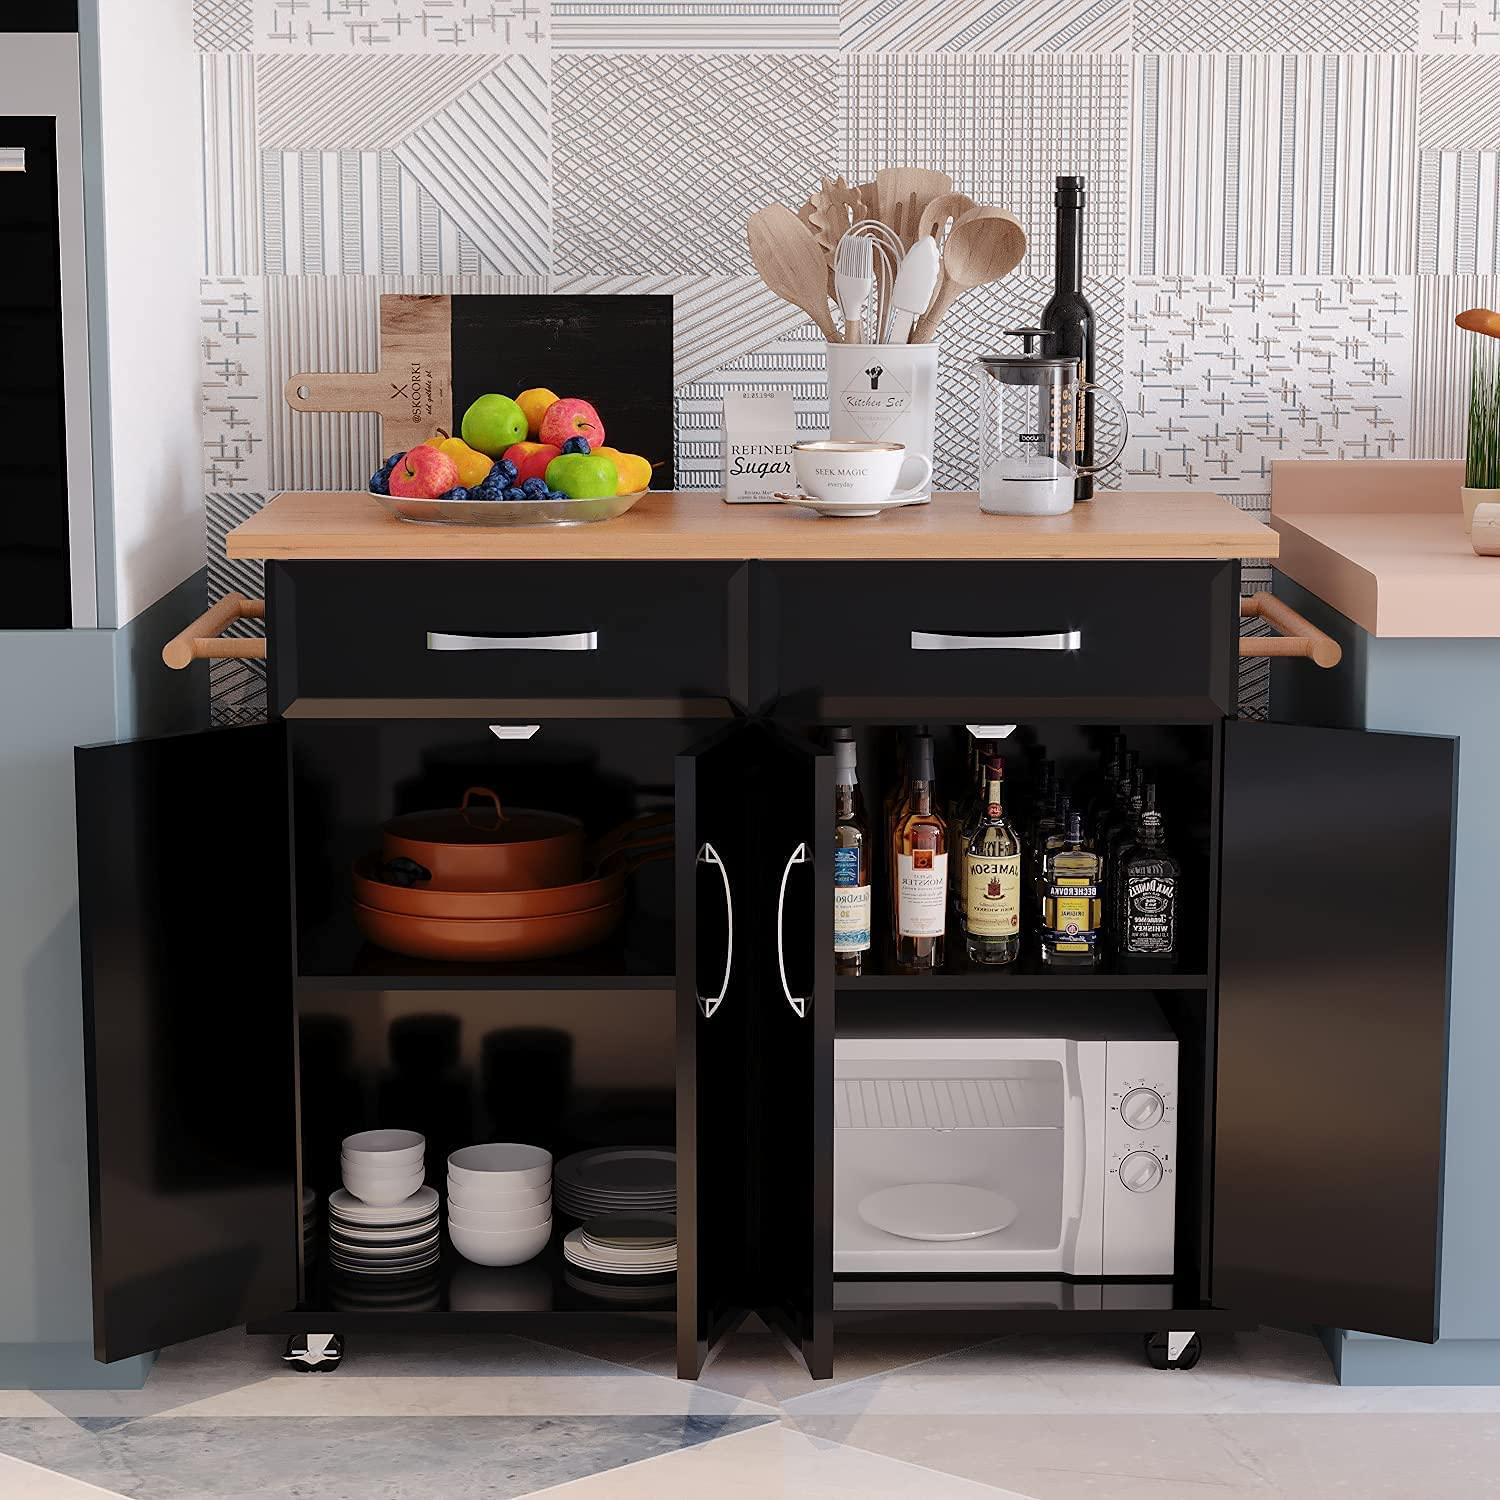 Finally popular brand 4 EVER WINNER Kitchen Island Drawers Storage SEAL limited product Kitch Rolling with